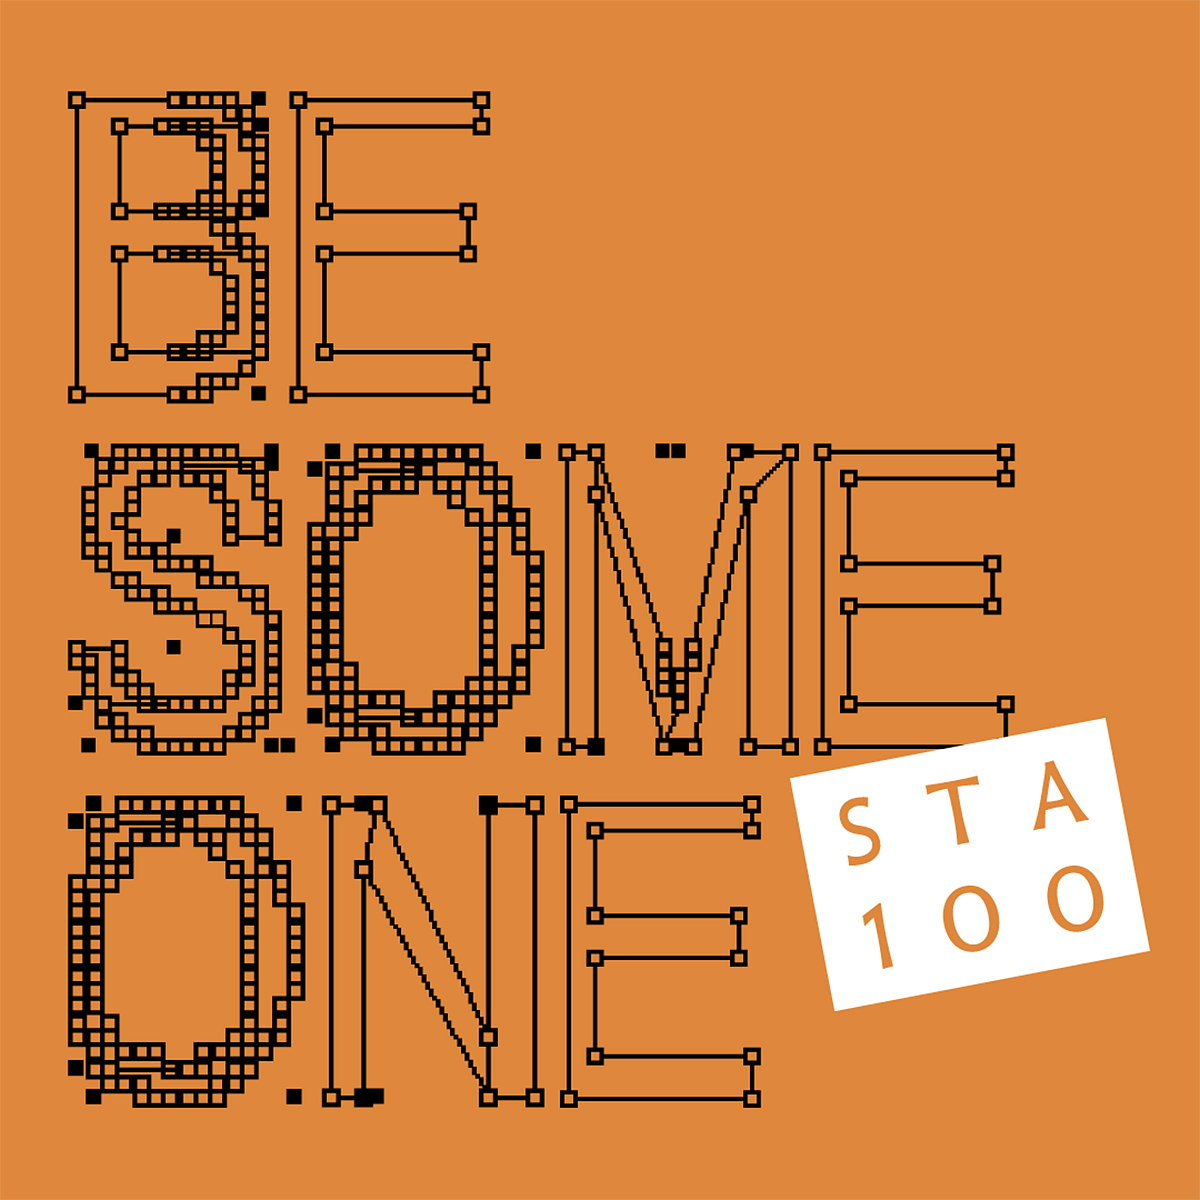 STA 100 International Typography Competition 2020